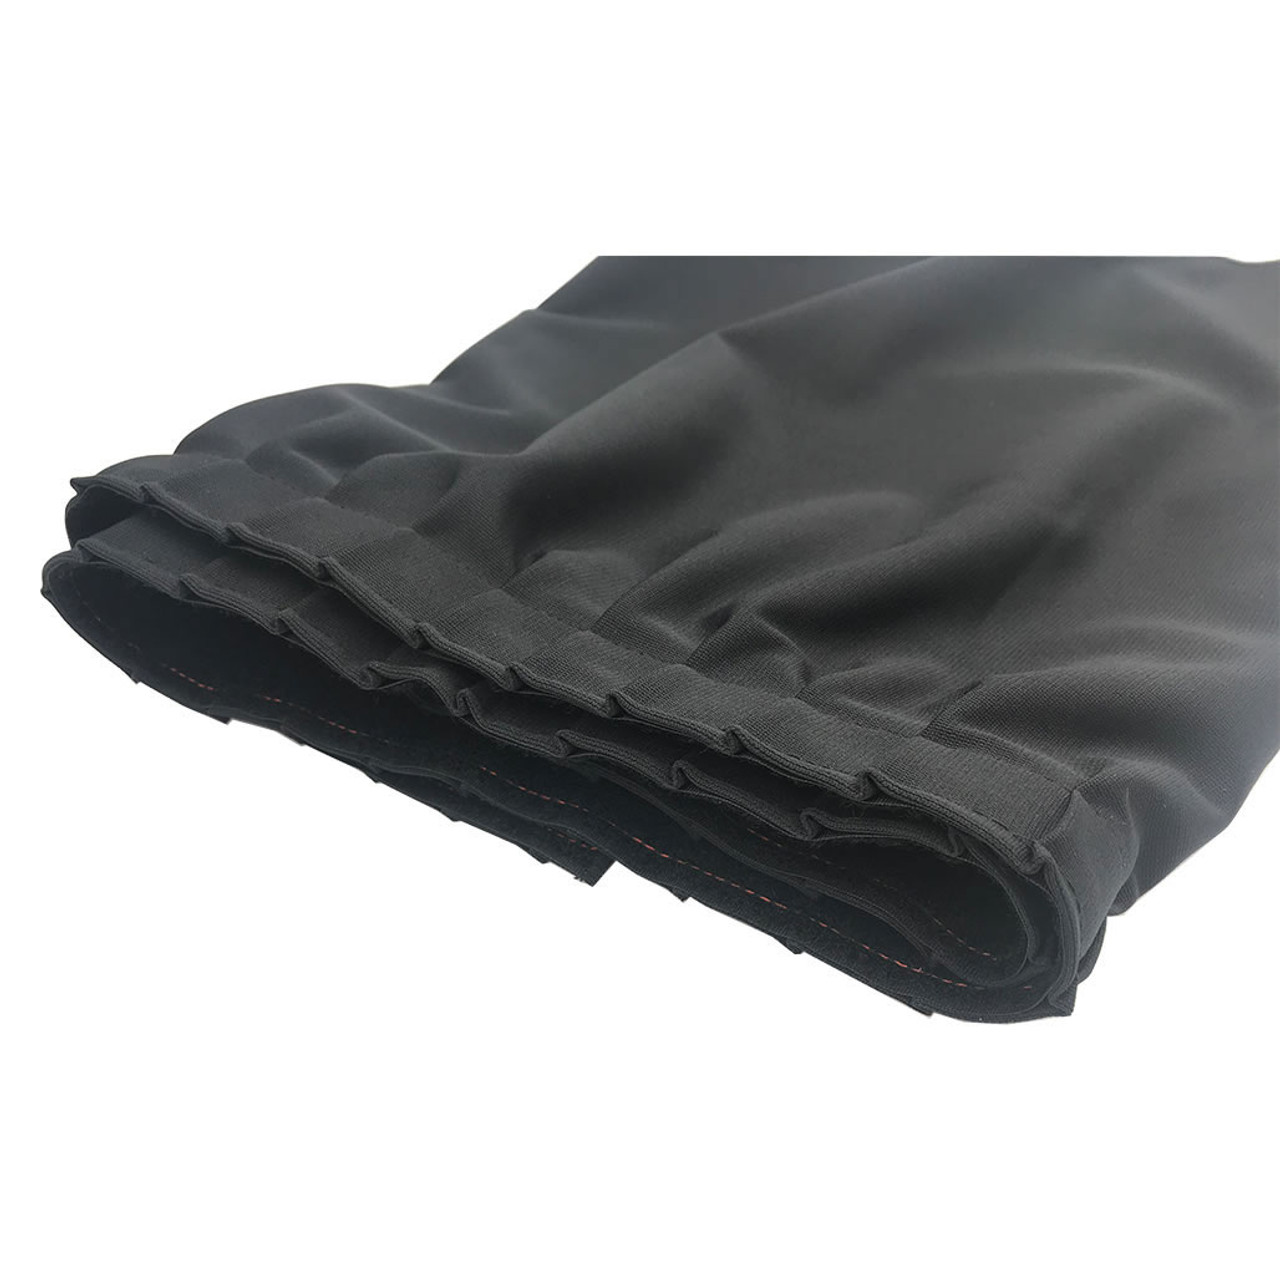 32 Inches High Best Value Black Expo Pleat Polyester Stage Skirting with Velcro. FR Rated. - Close up of Expo/Mini-Accordion Pleat.